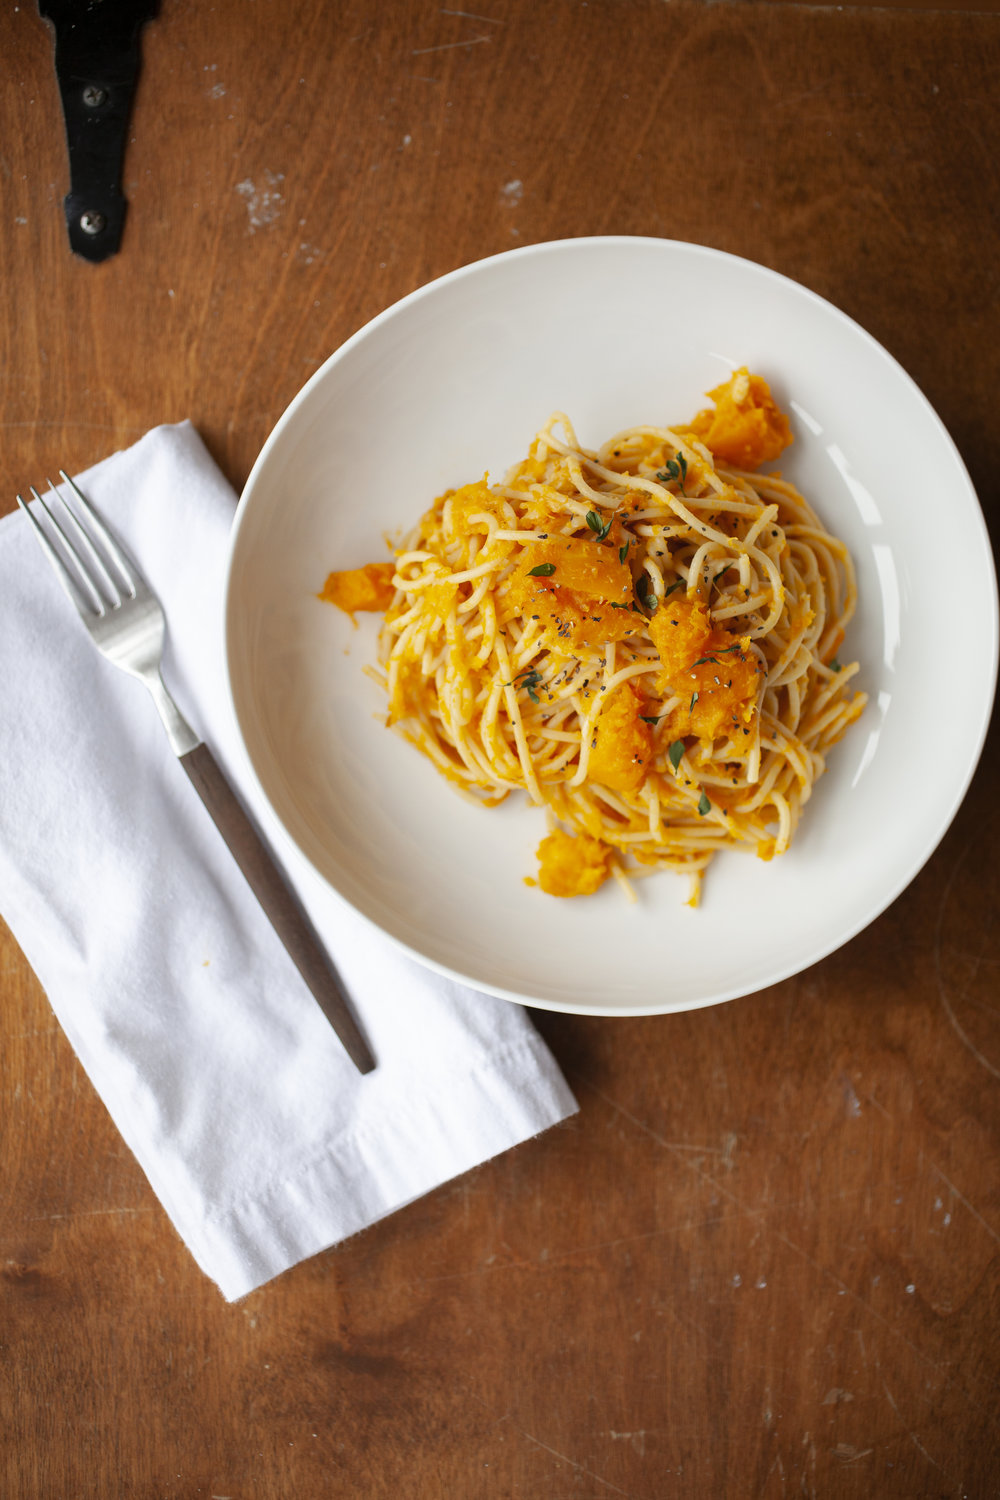 Produce On Parade - Smoked Gouda and Butternut Pasta - Sweet, roasted butternut squash coat this warm and comforting pasta while garlic and smoked gouda add a bit of richness. With so few ingredients, the stars of this dish really shine. Simple and bursting with flavor yet incredibly easy and hands off; great for a weeknight dinner. I love that this pasta is sophisticated enough for a proper dinner with company, but casual enough for a Monday meal after work. It's one of my very favorite meals.